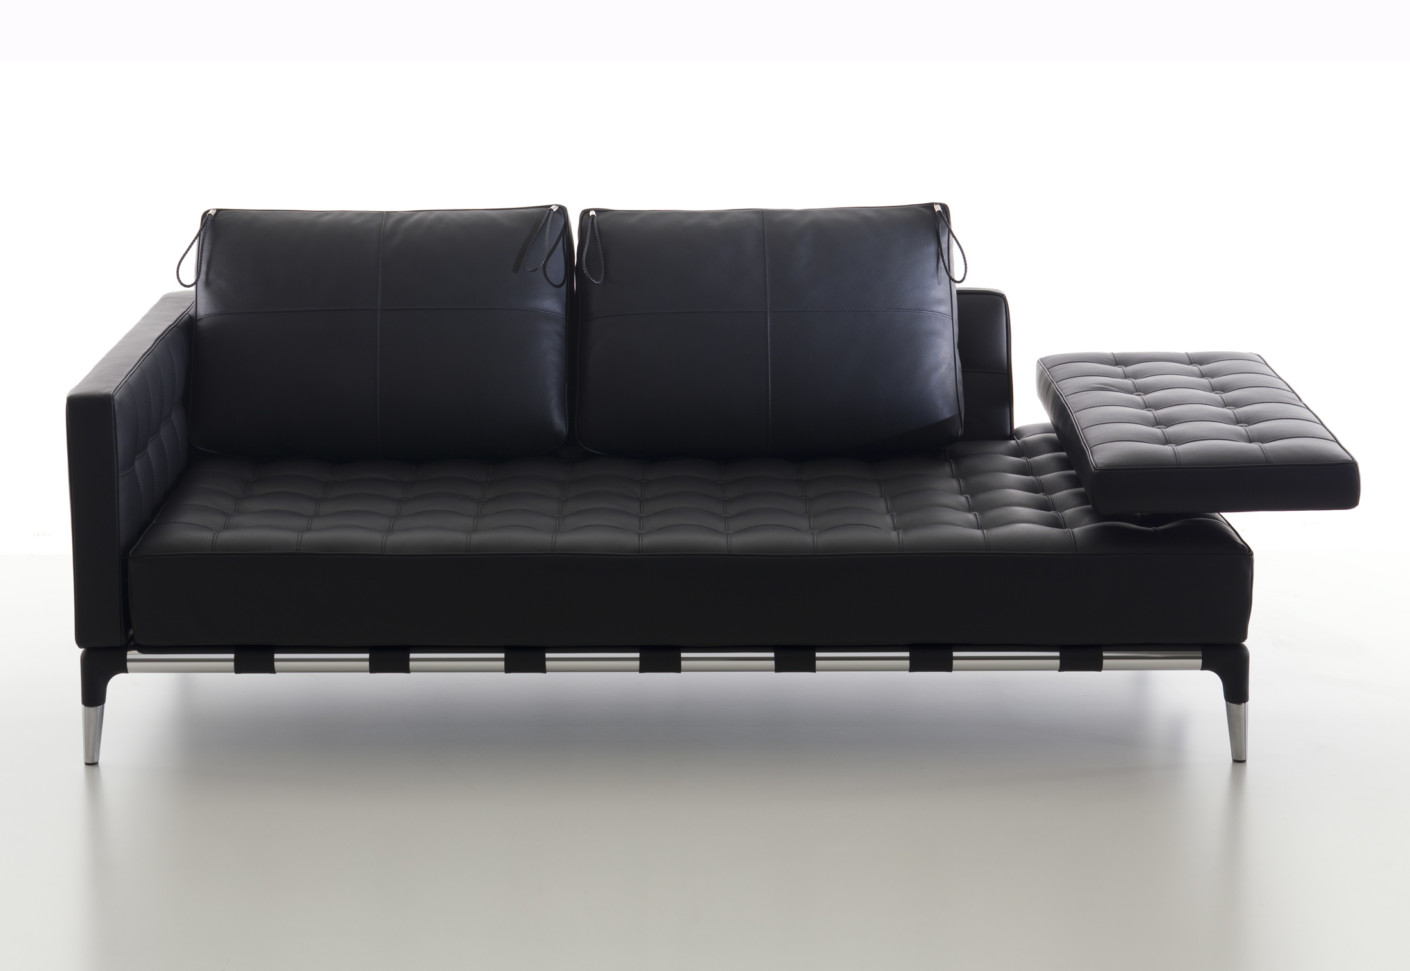 Priv 233 Sofa By Cassina Stylepark